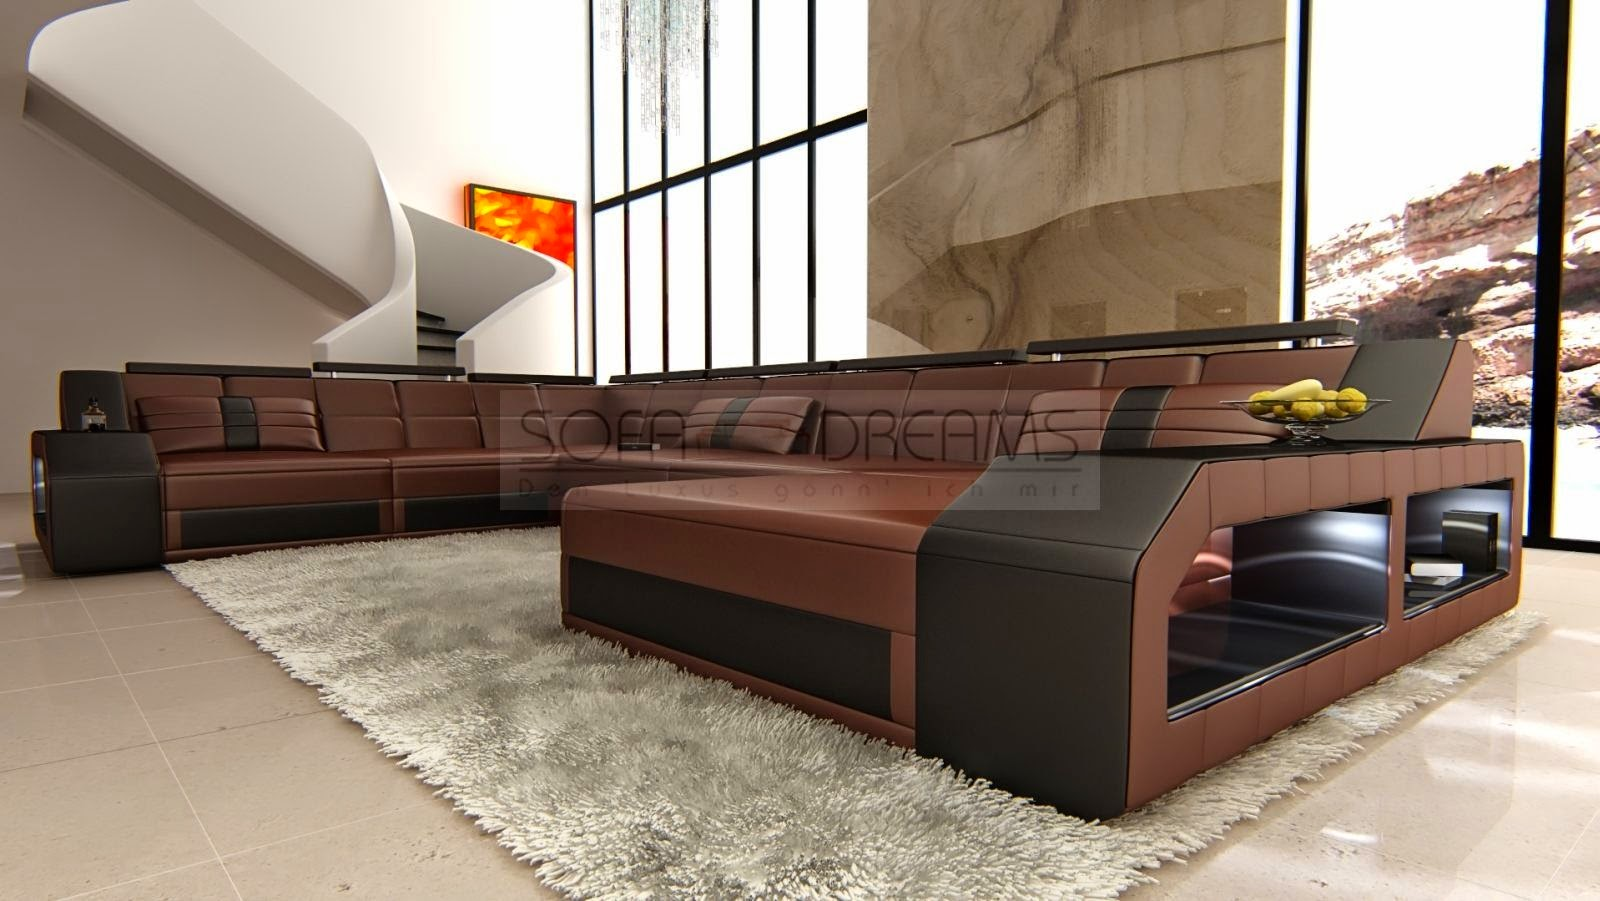 ledersofas sofas vom designer. Black Bedroom Furniture Sets. Home Design Ideas